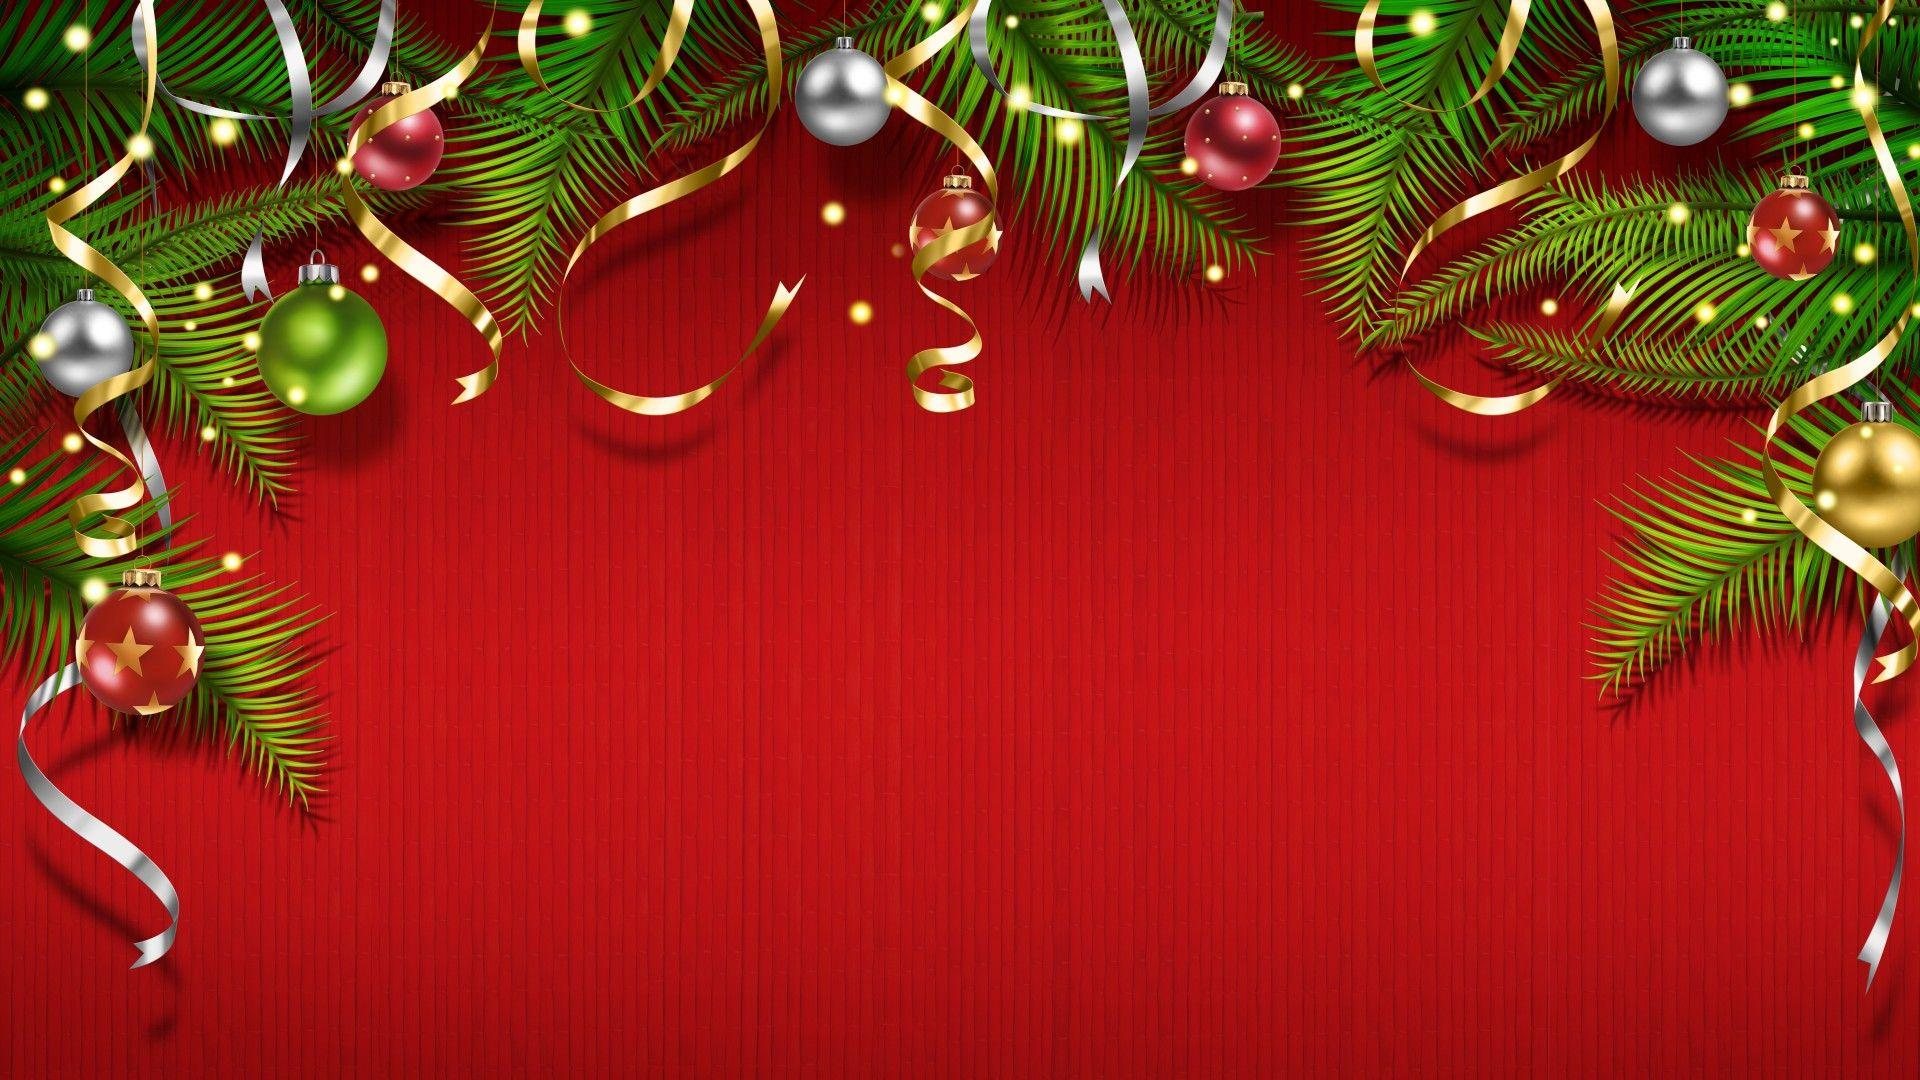 Full HD Pictures Christmas Decorations 494.39 KB